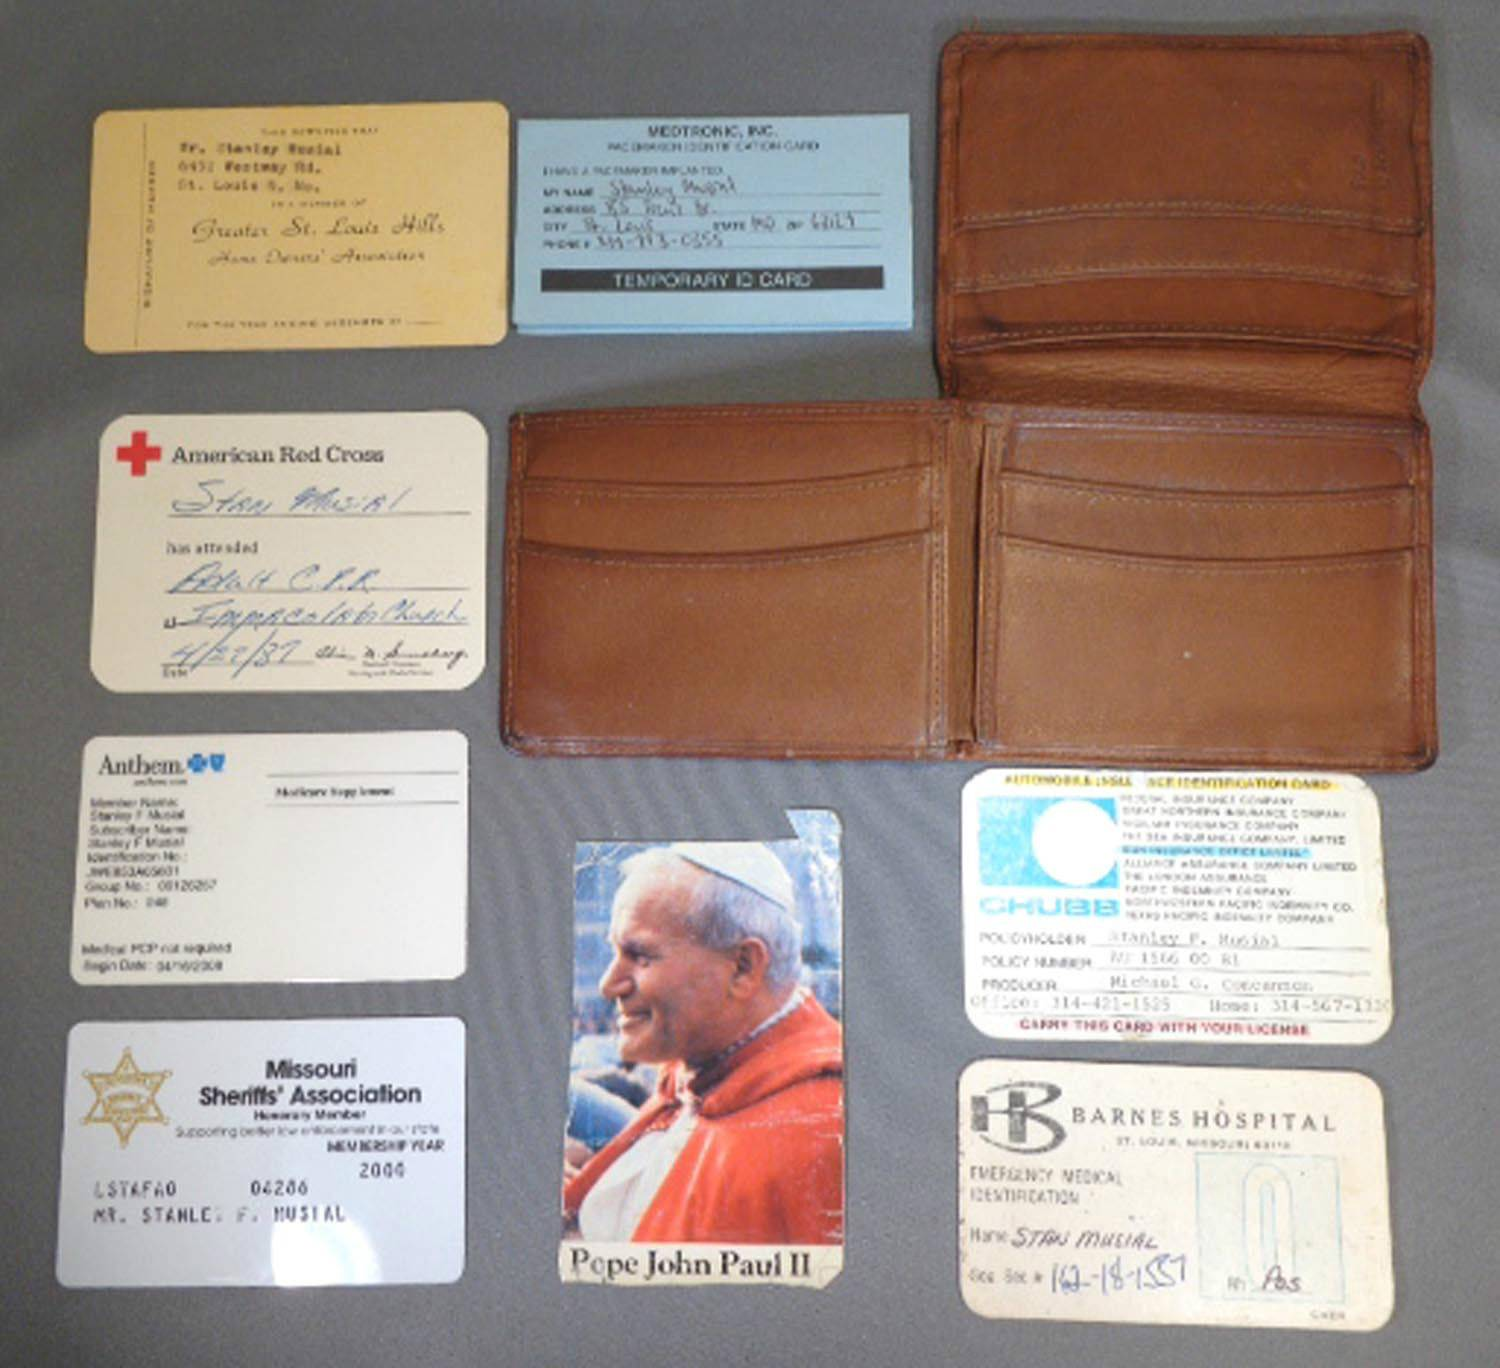 STAN MUSIAL's OWN WALLET INCLUDING GREAT CONTENTS FROM MUSIAL ESTATE